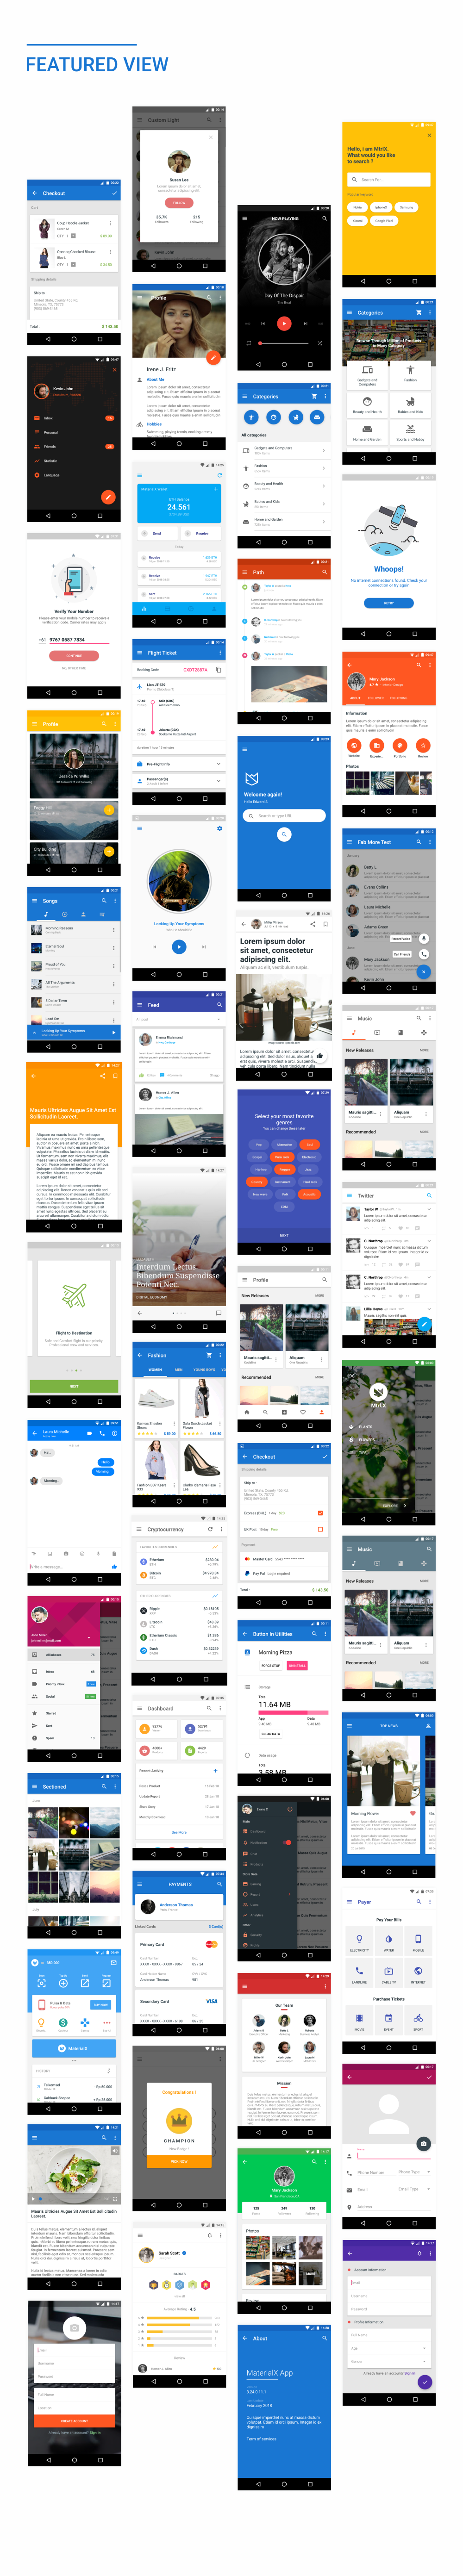 MaterialX - Android Material Design UI Components 2.5 - 33